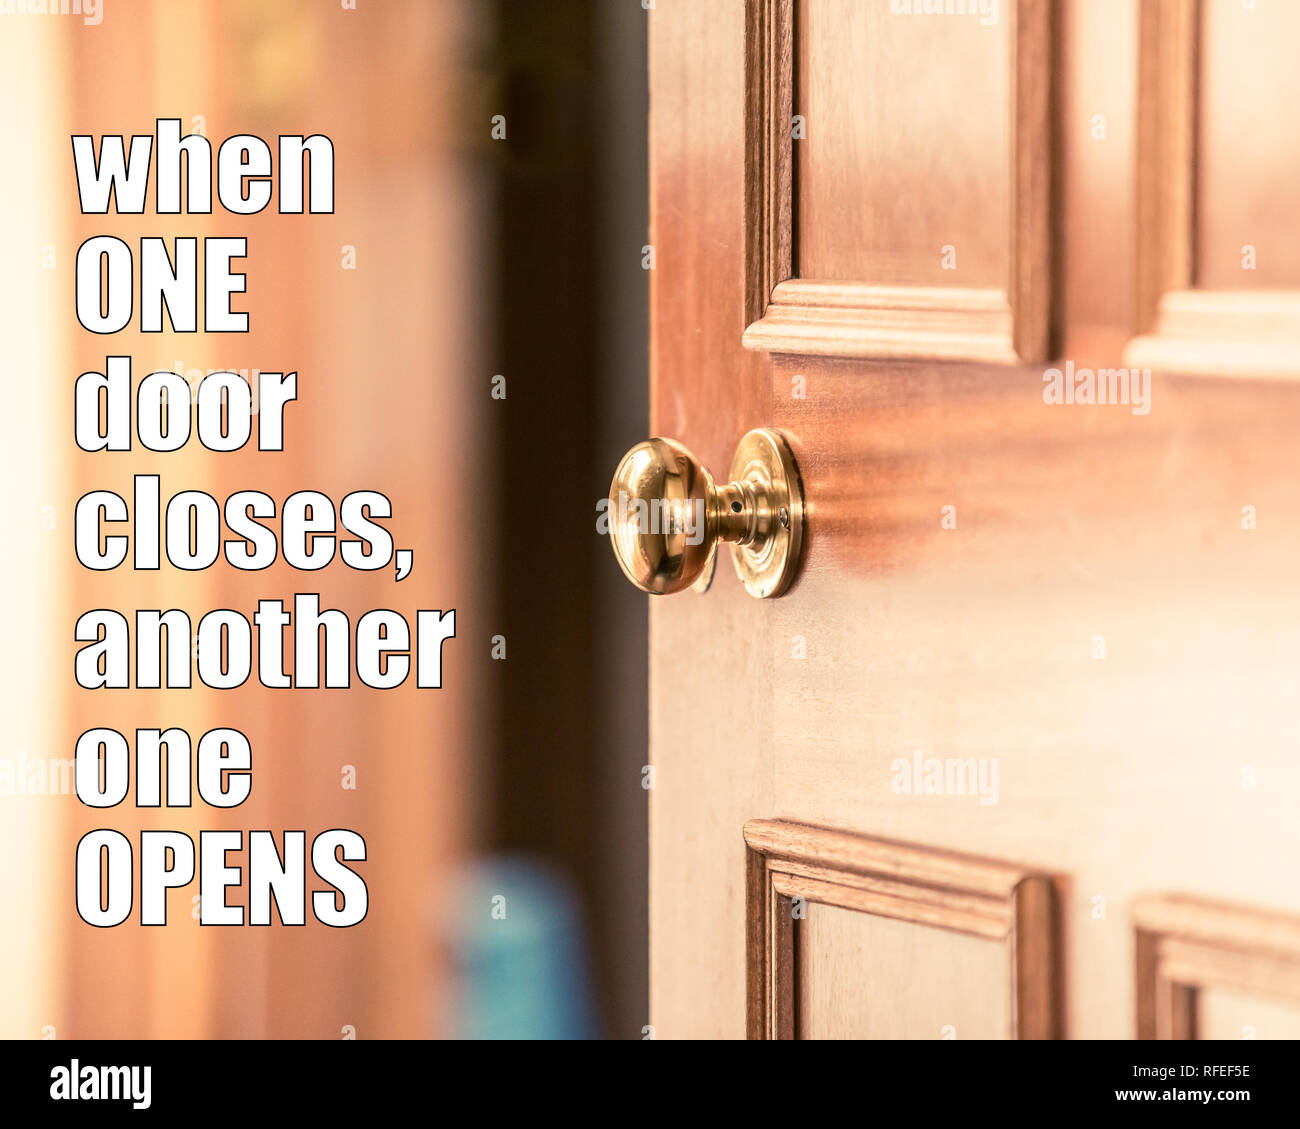 Motivational quote - when one door closes another one opens. Opportunity quotes, new life challenges quote. Never give up and keep going forward - Stock Image